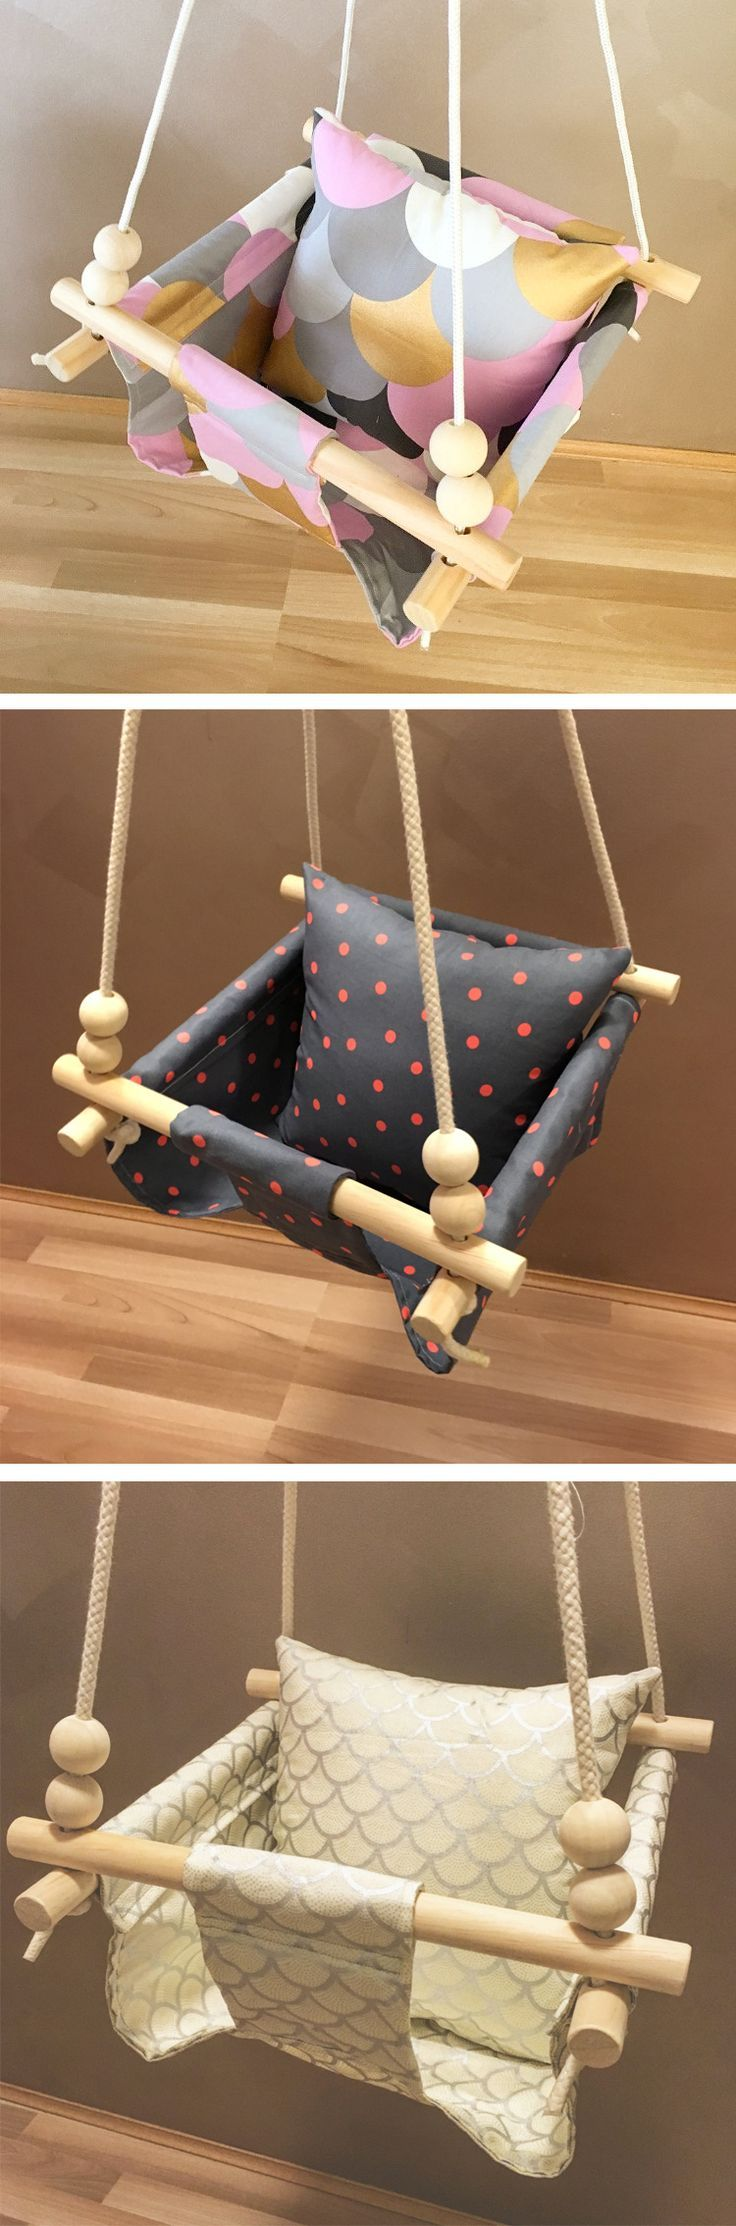 Perfect Pink Swing / Handmade Burlap Baby Swing, Toddler Swing or Kids Swing and Rattle | Cool Baby Swing